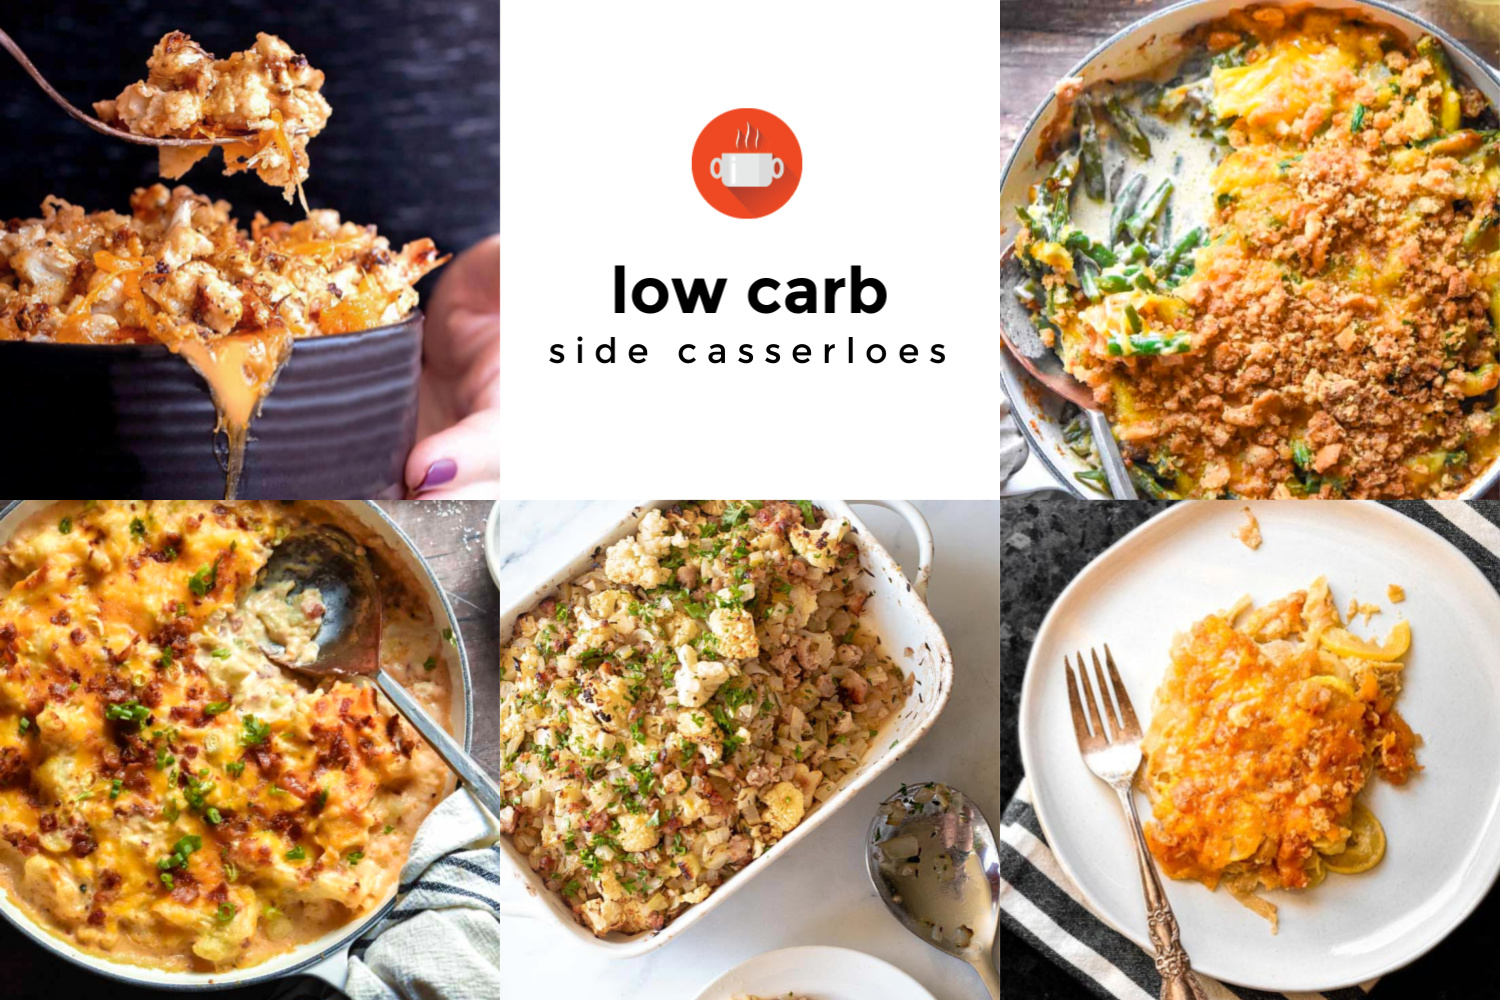 Collage of various low carb side casseroles